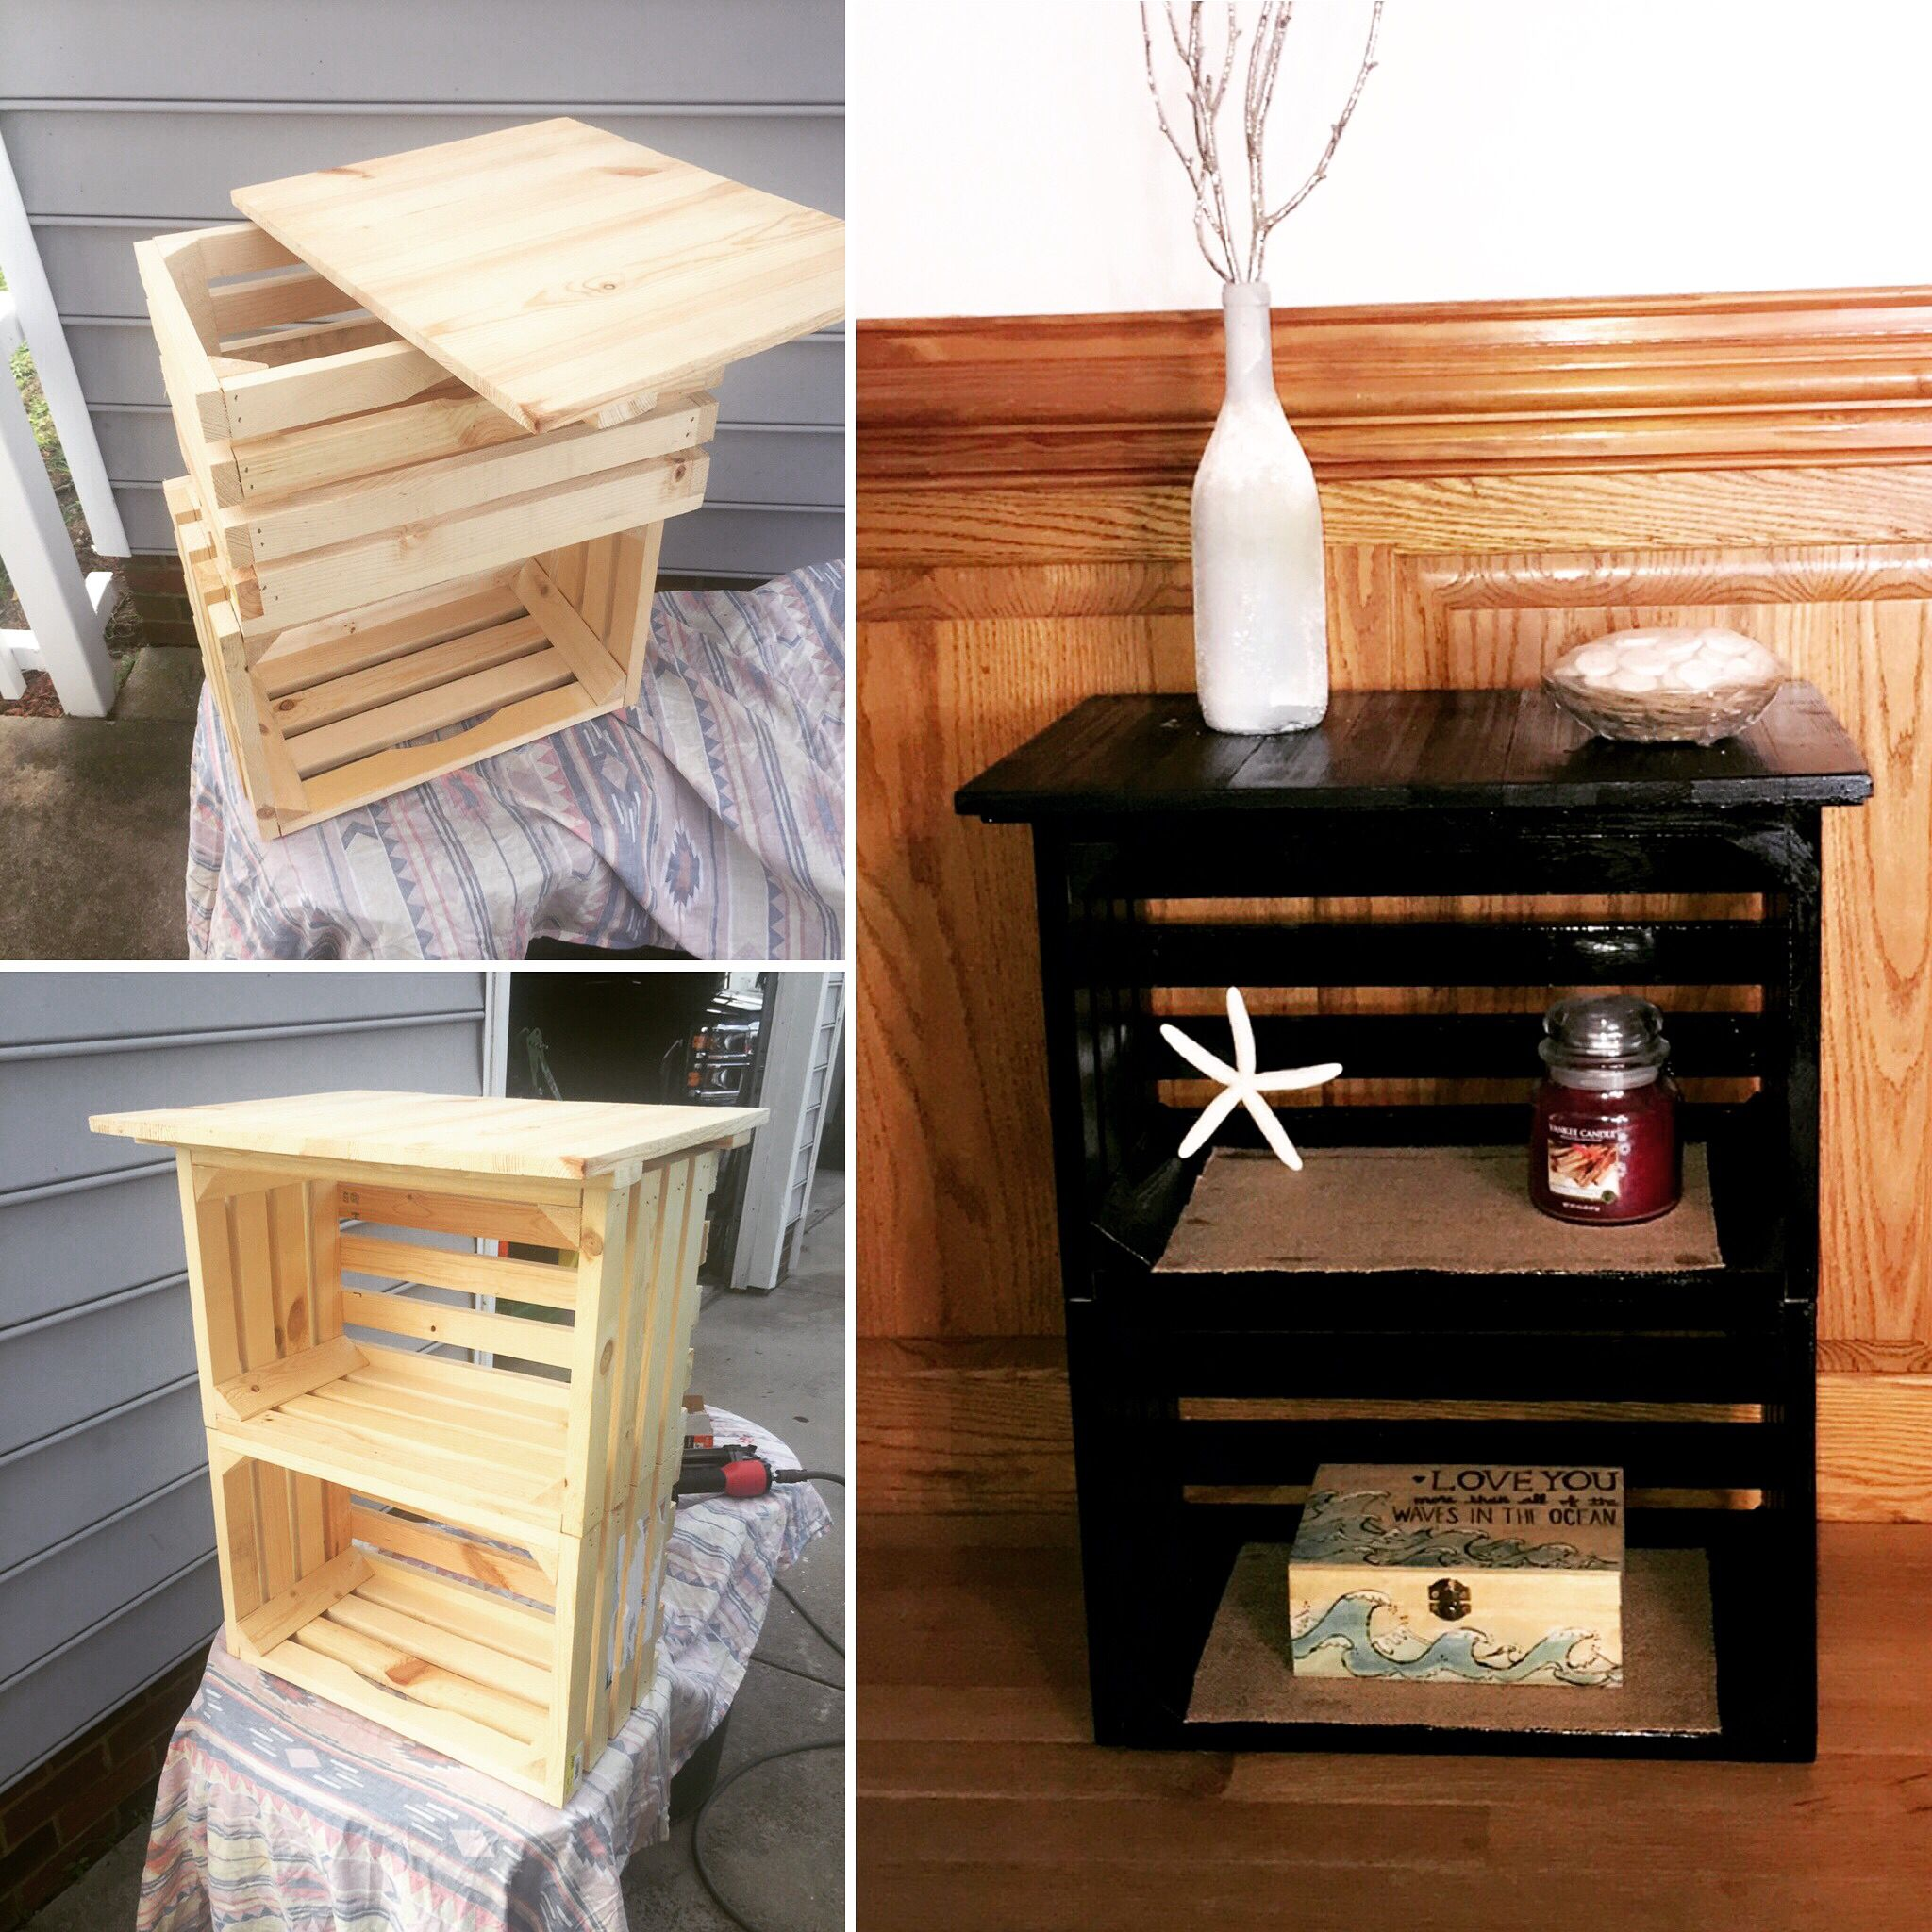 Diy crate nightstand pallet craft ideas pinterest